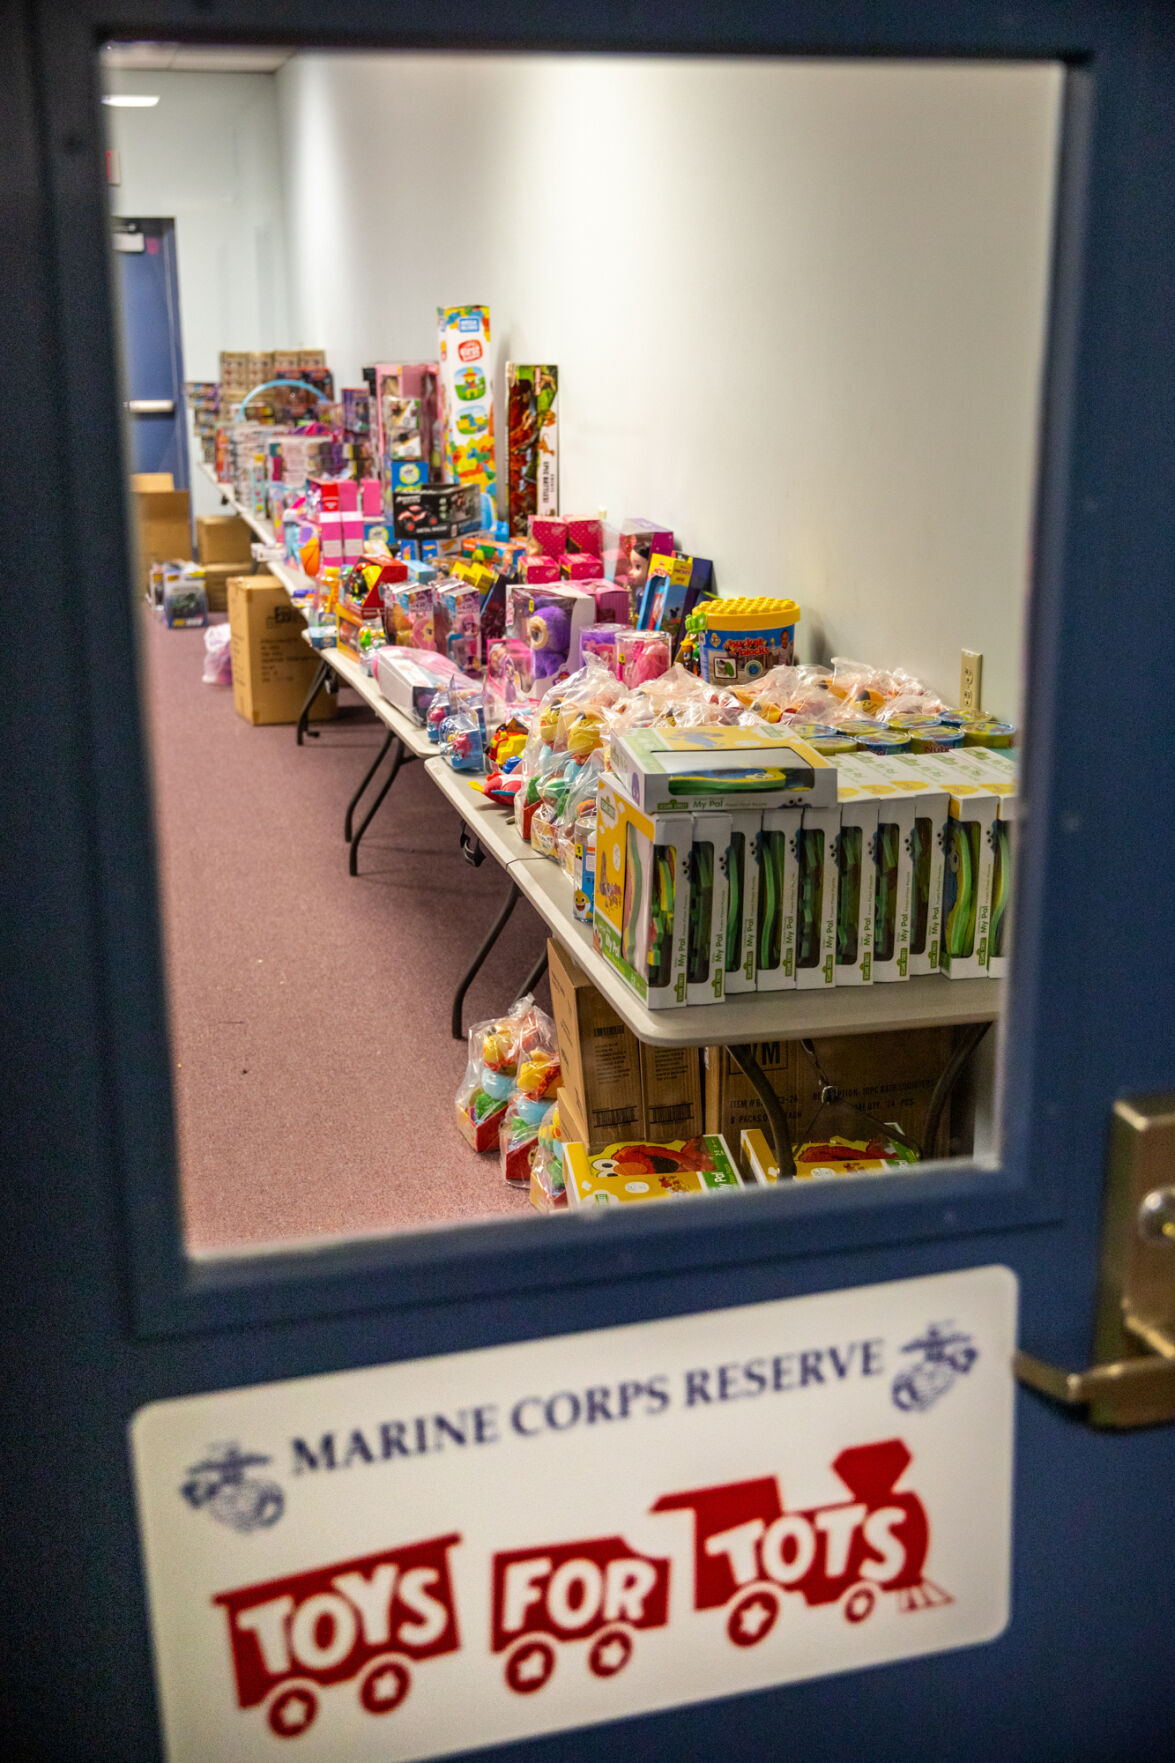 Reviving toys for tots Team effort of childhood friends boosts Jefferson County program run by U.S. Marine Corps Reserve